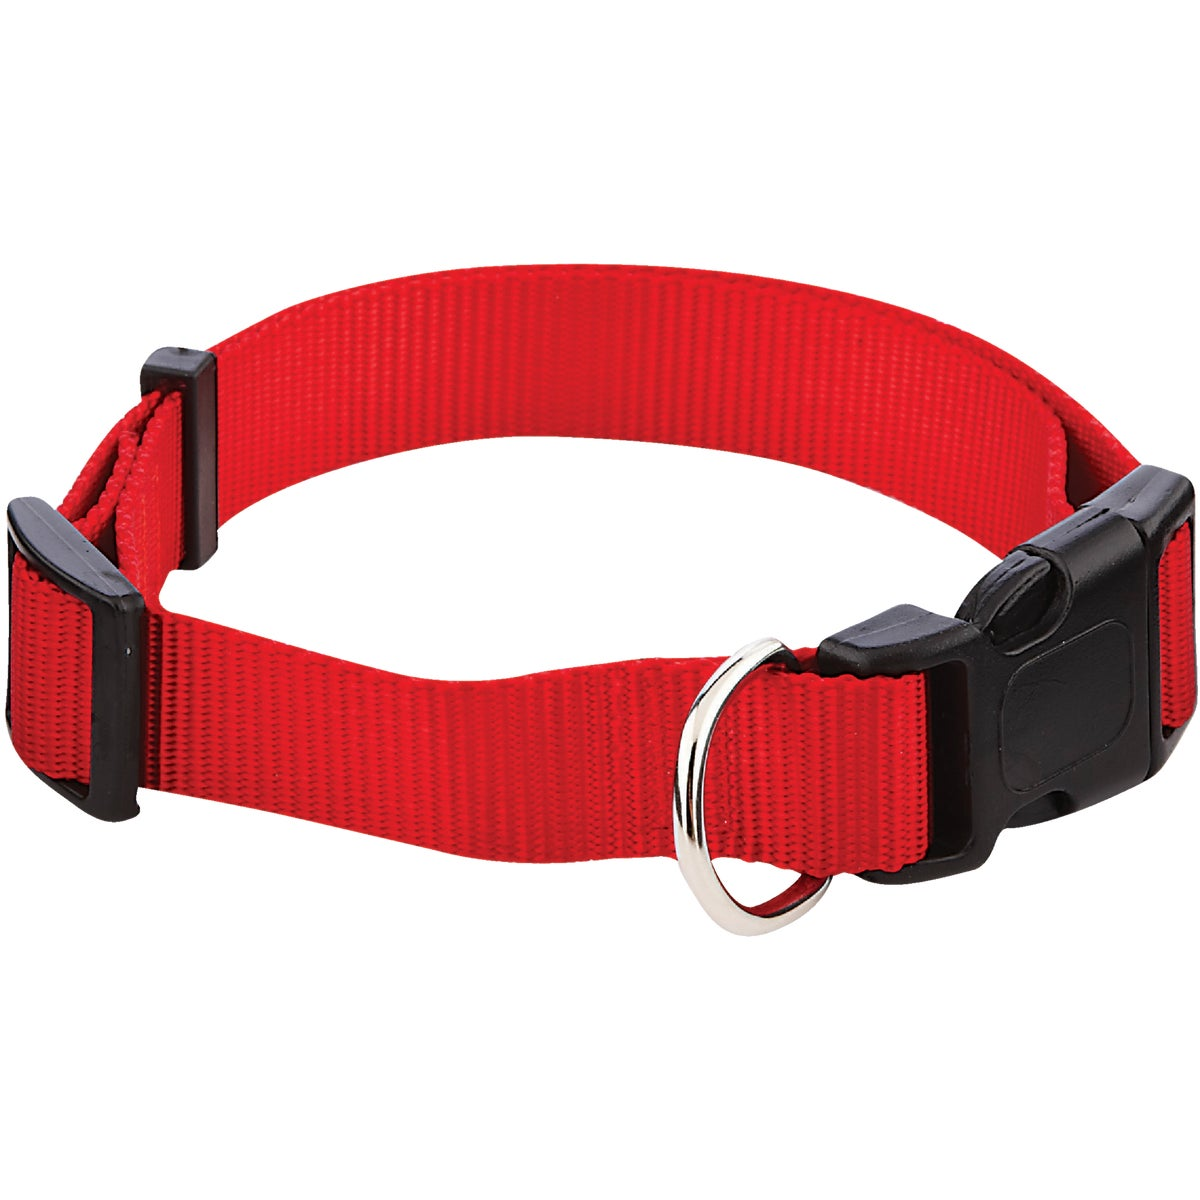 1X18-26 NYL ADJ COLLAR - 31443 by Westminster Pet